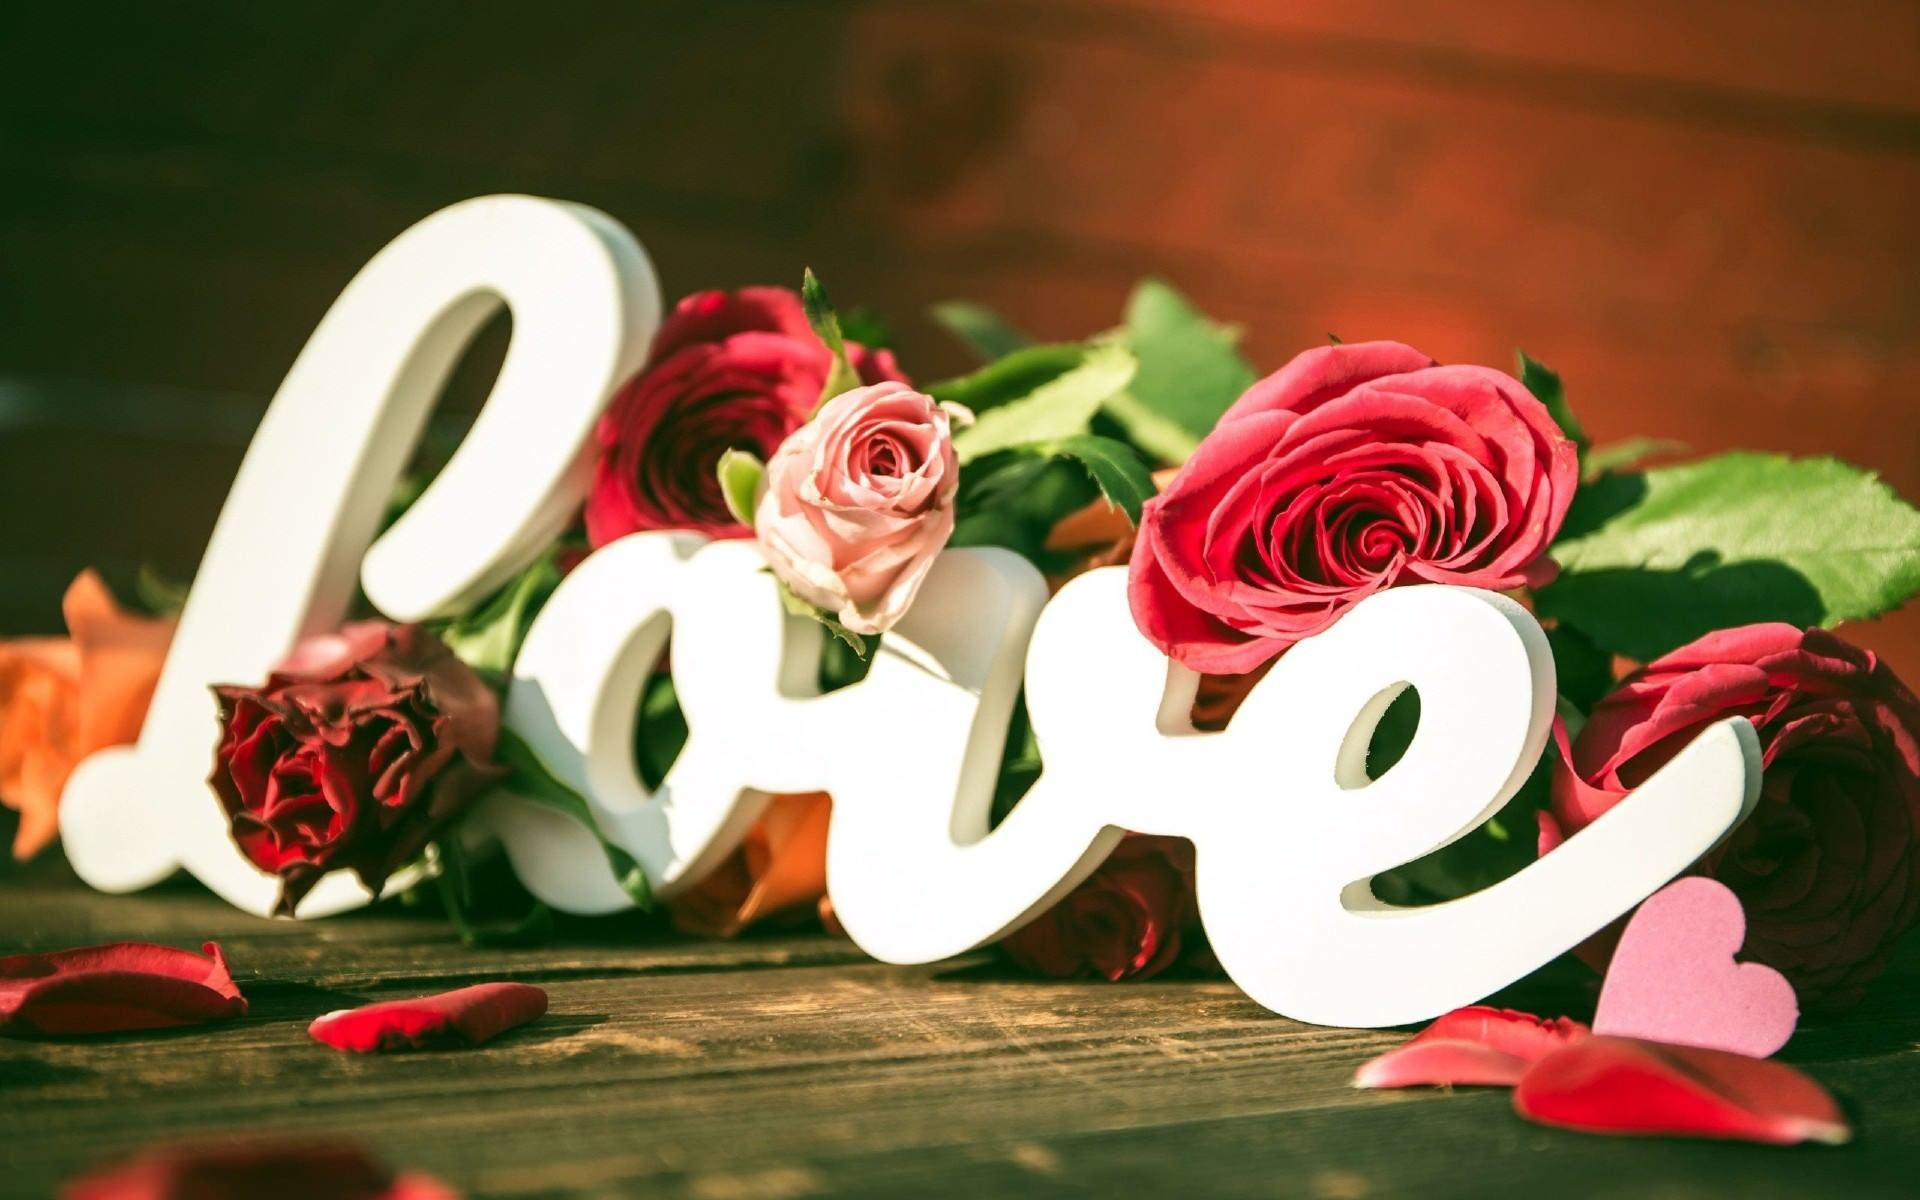 Beautiful Love Wallpapers For Desktop Full Screen Wallpaper Cave